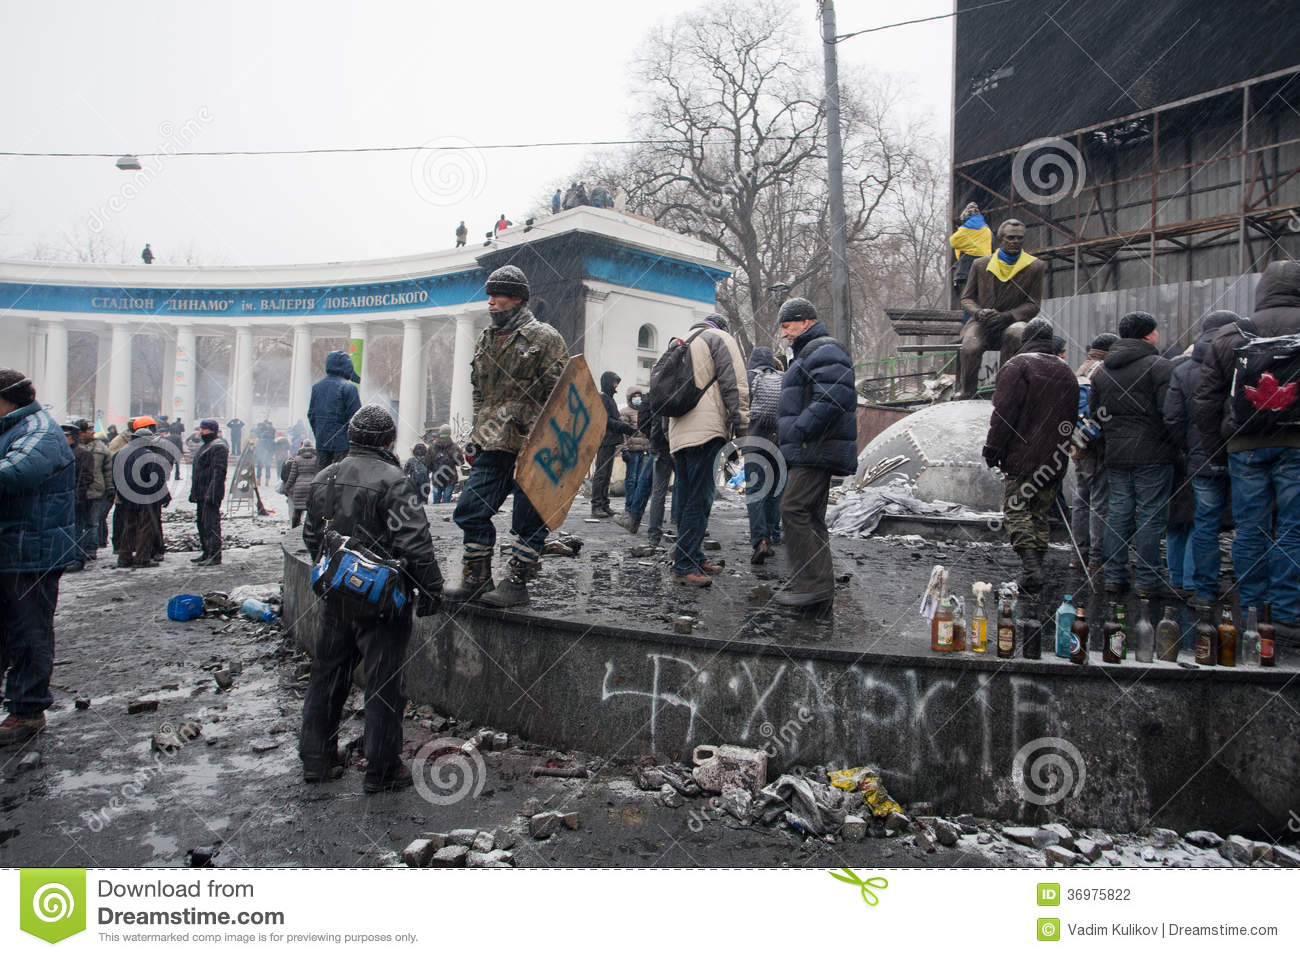 KYIV, UKRAINE: Activists of the riot in uniform wait for the fight with police in the burned square